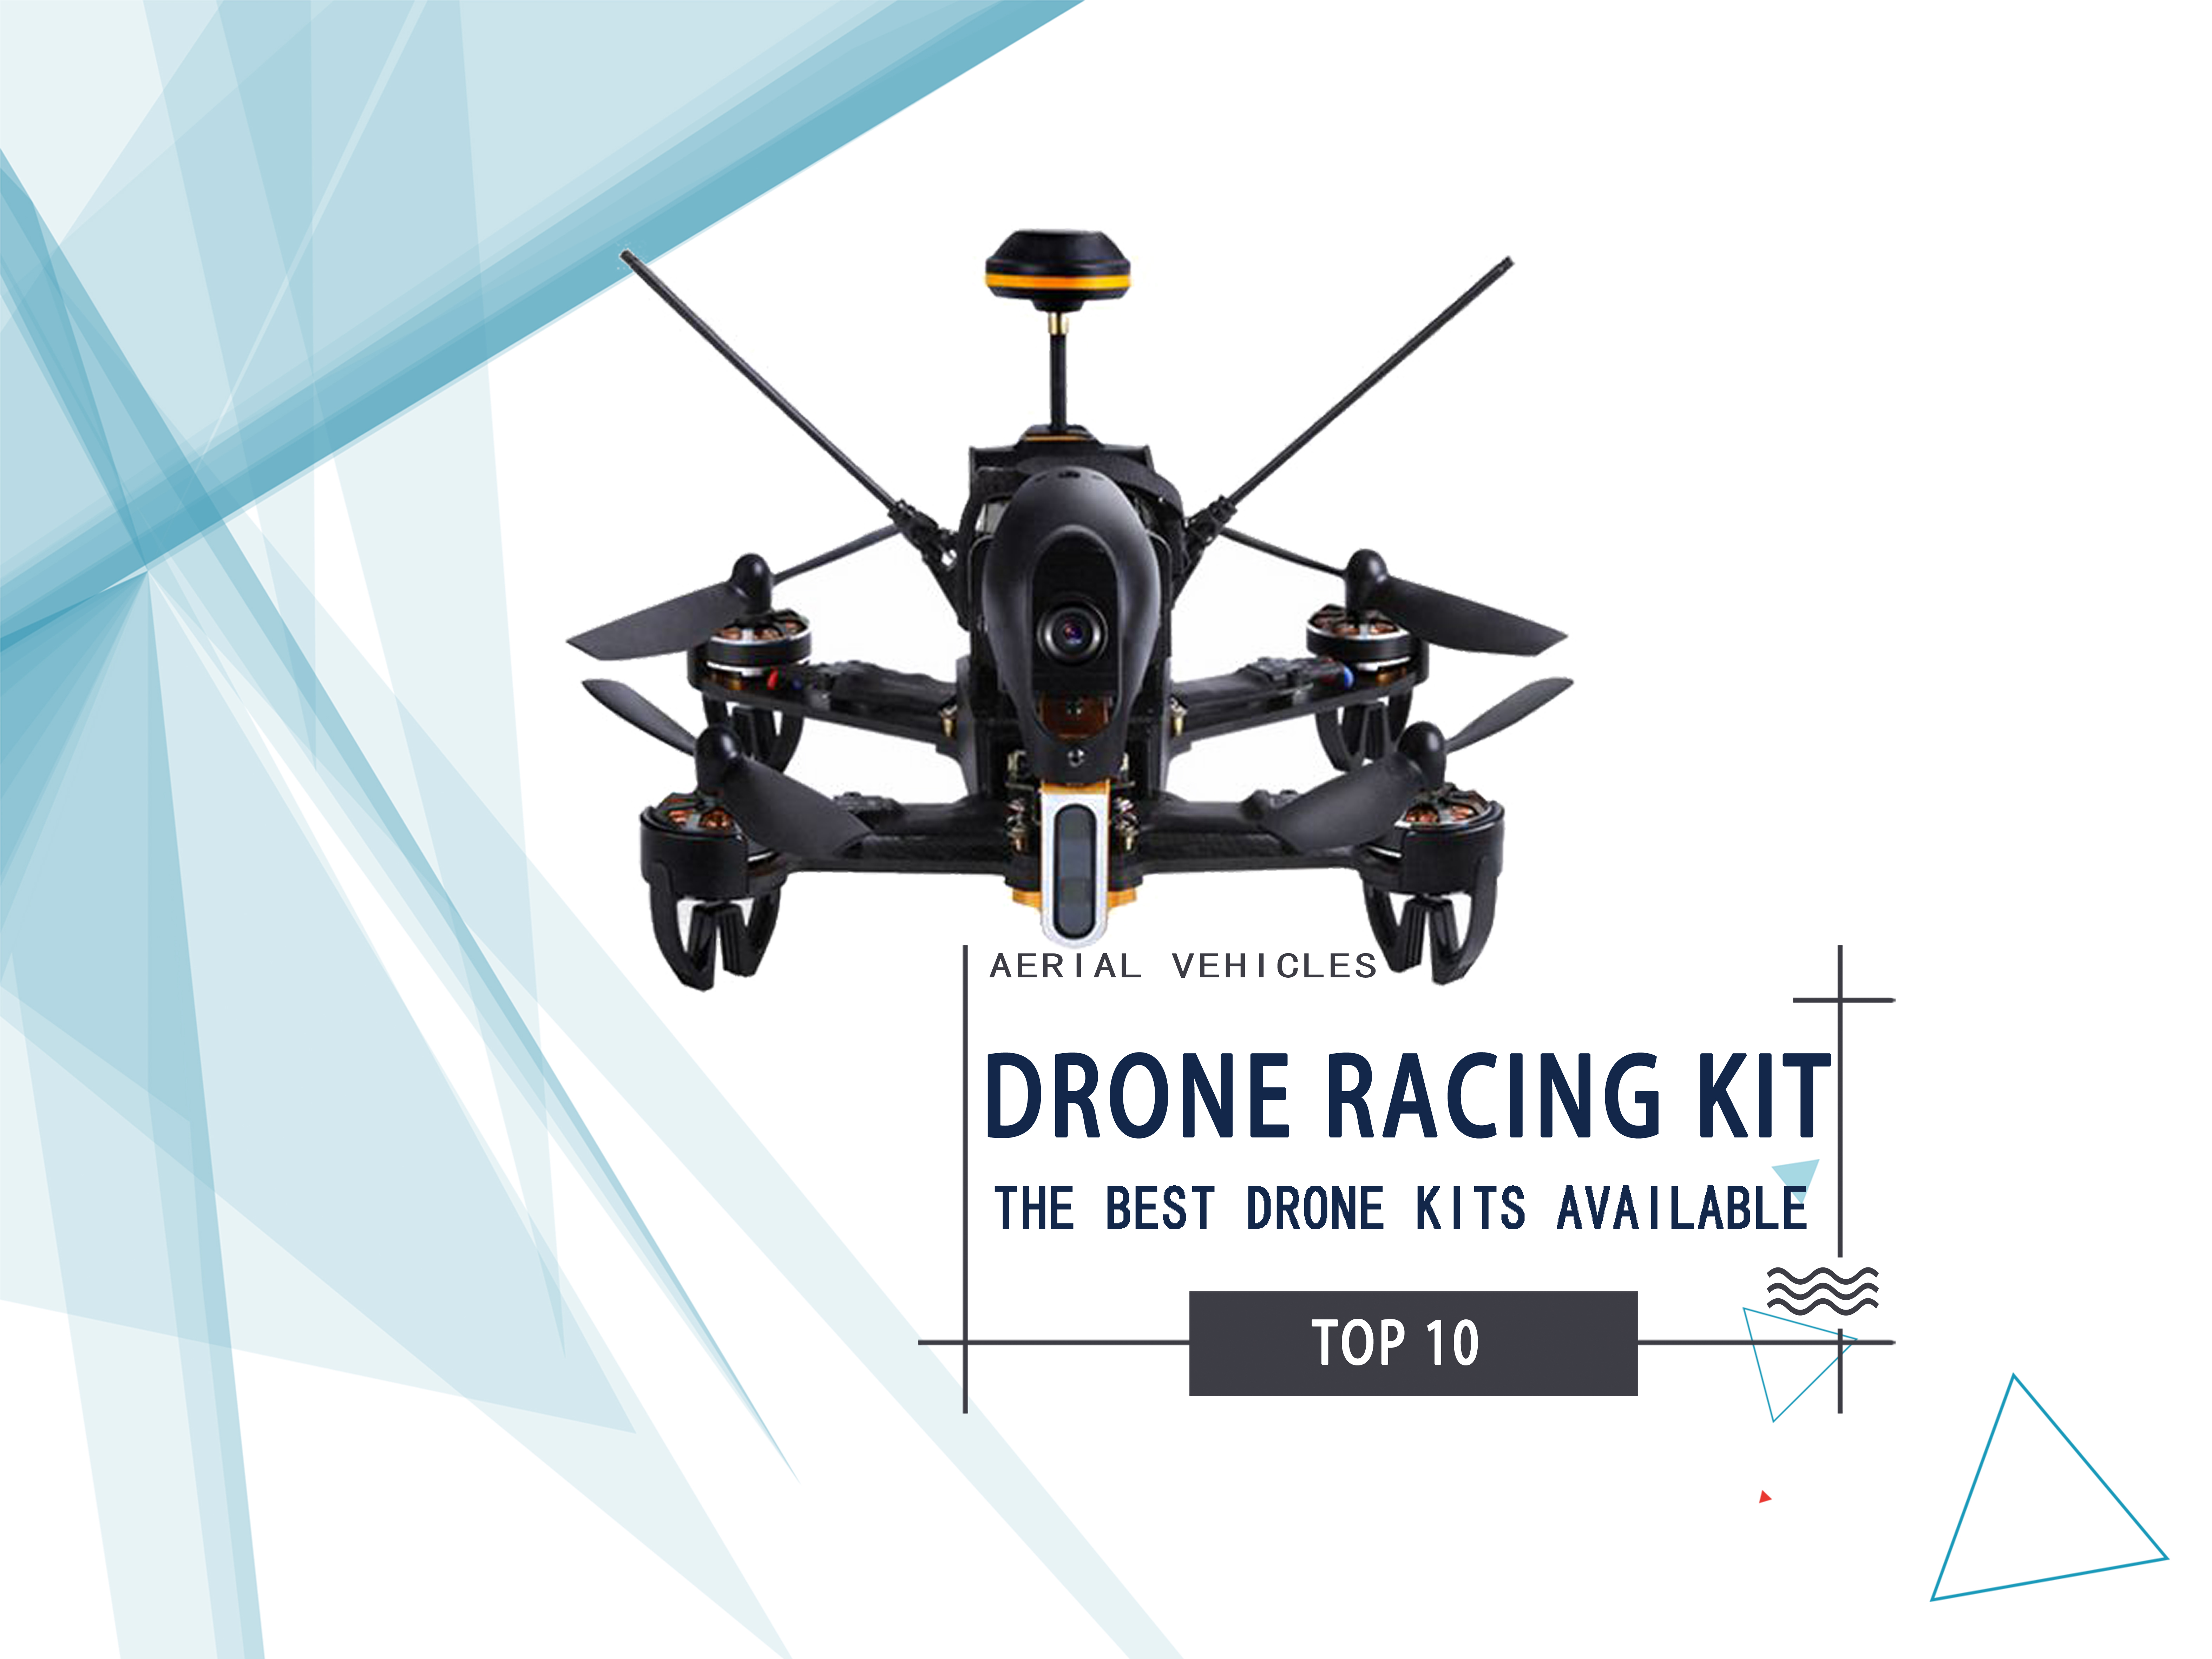 Drone Racing Kit – 10 Best Drone Kits Available